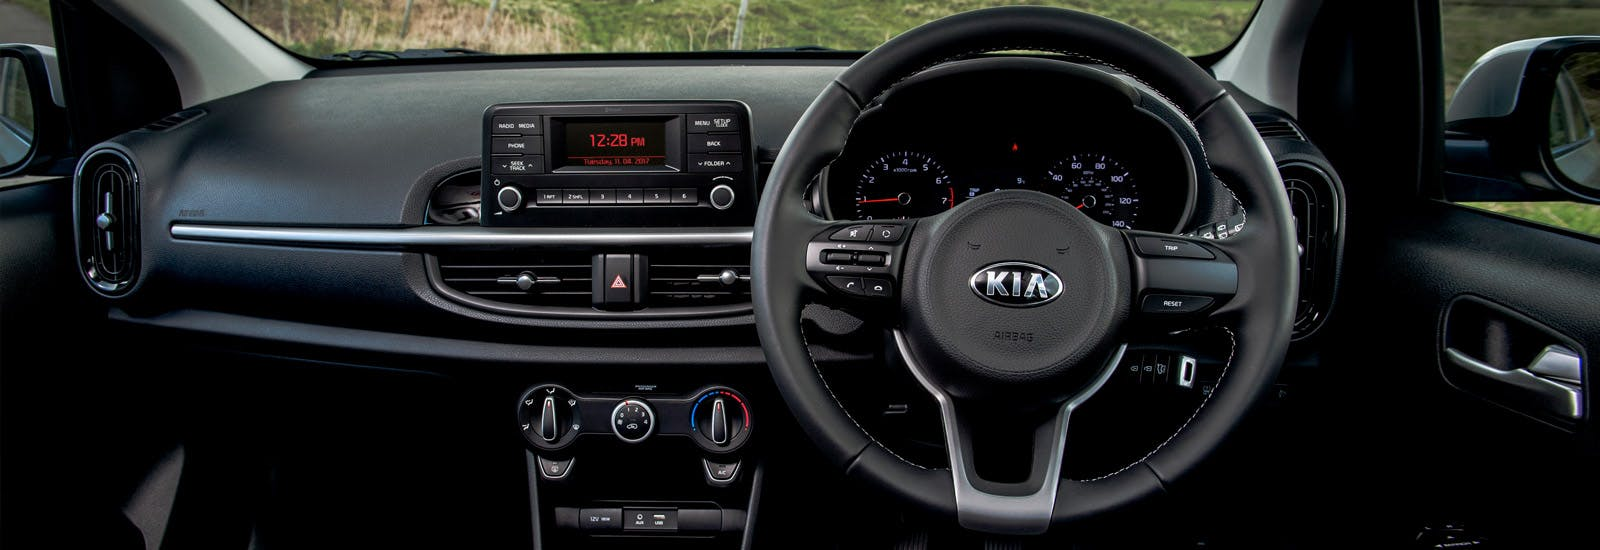 2017 kia picanto price specs and release date carwow. Black Bedroom Furniture Sets. Home Design Ideas